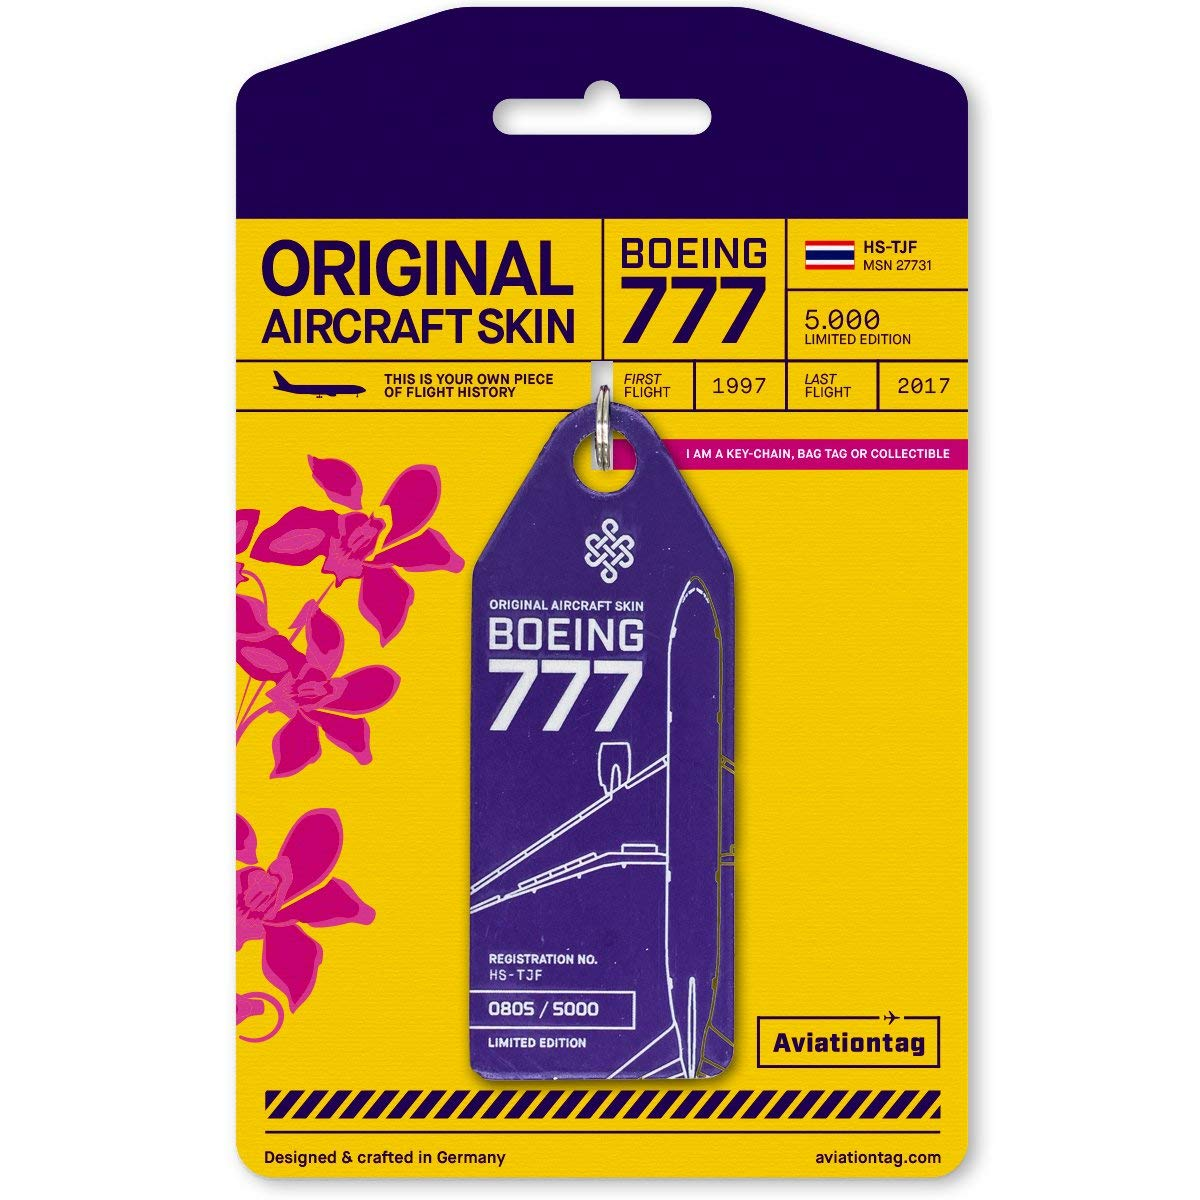 AVT039 AviationTag Boeing 777-200 Reg #HS-TJF (Thai Airways) Purple Original Aircraft Skin Keychain/Luggage Tag/Etc with Lost & Found Feature by AviationTag